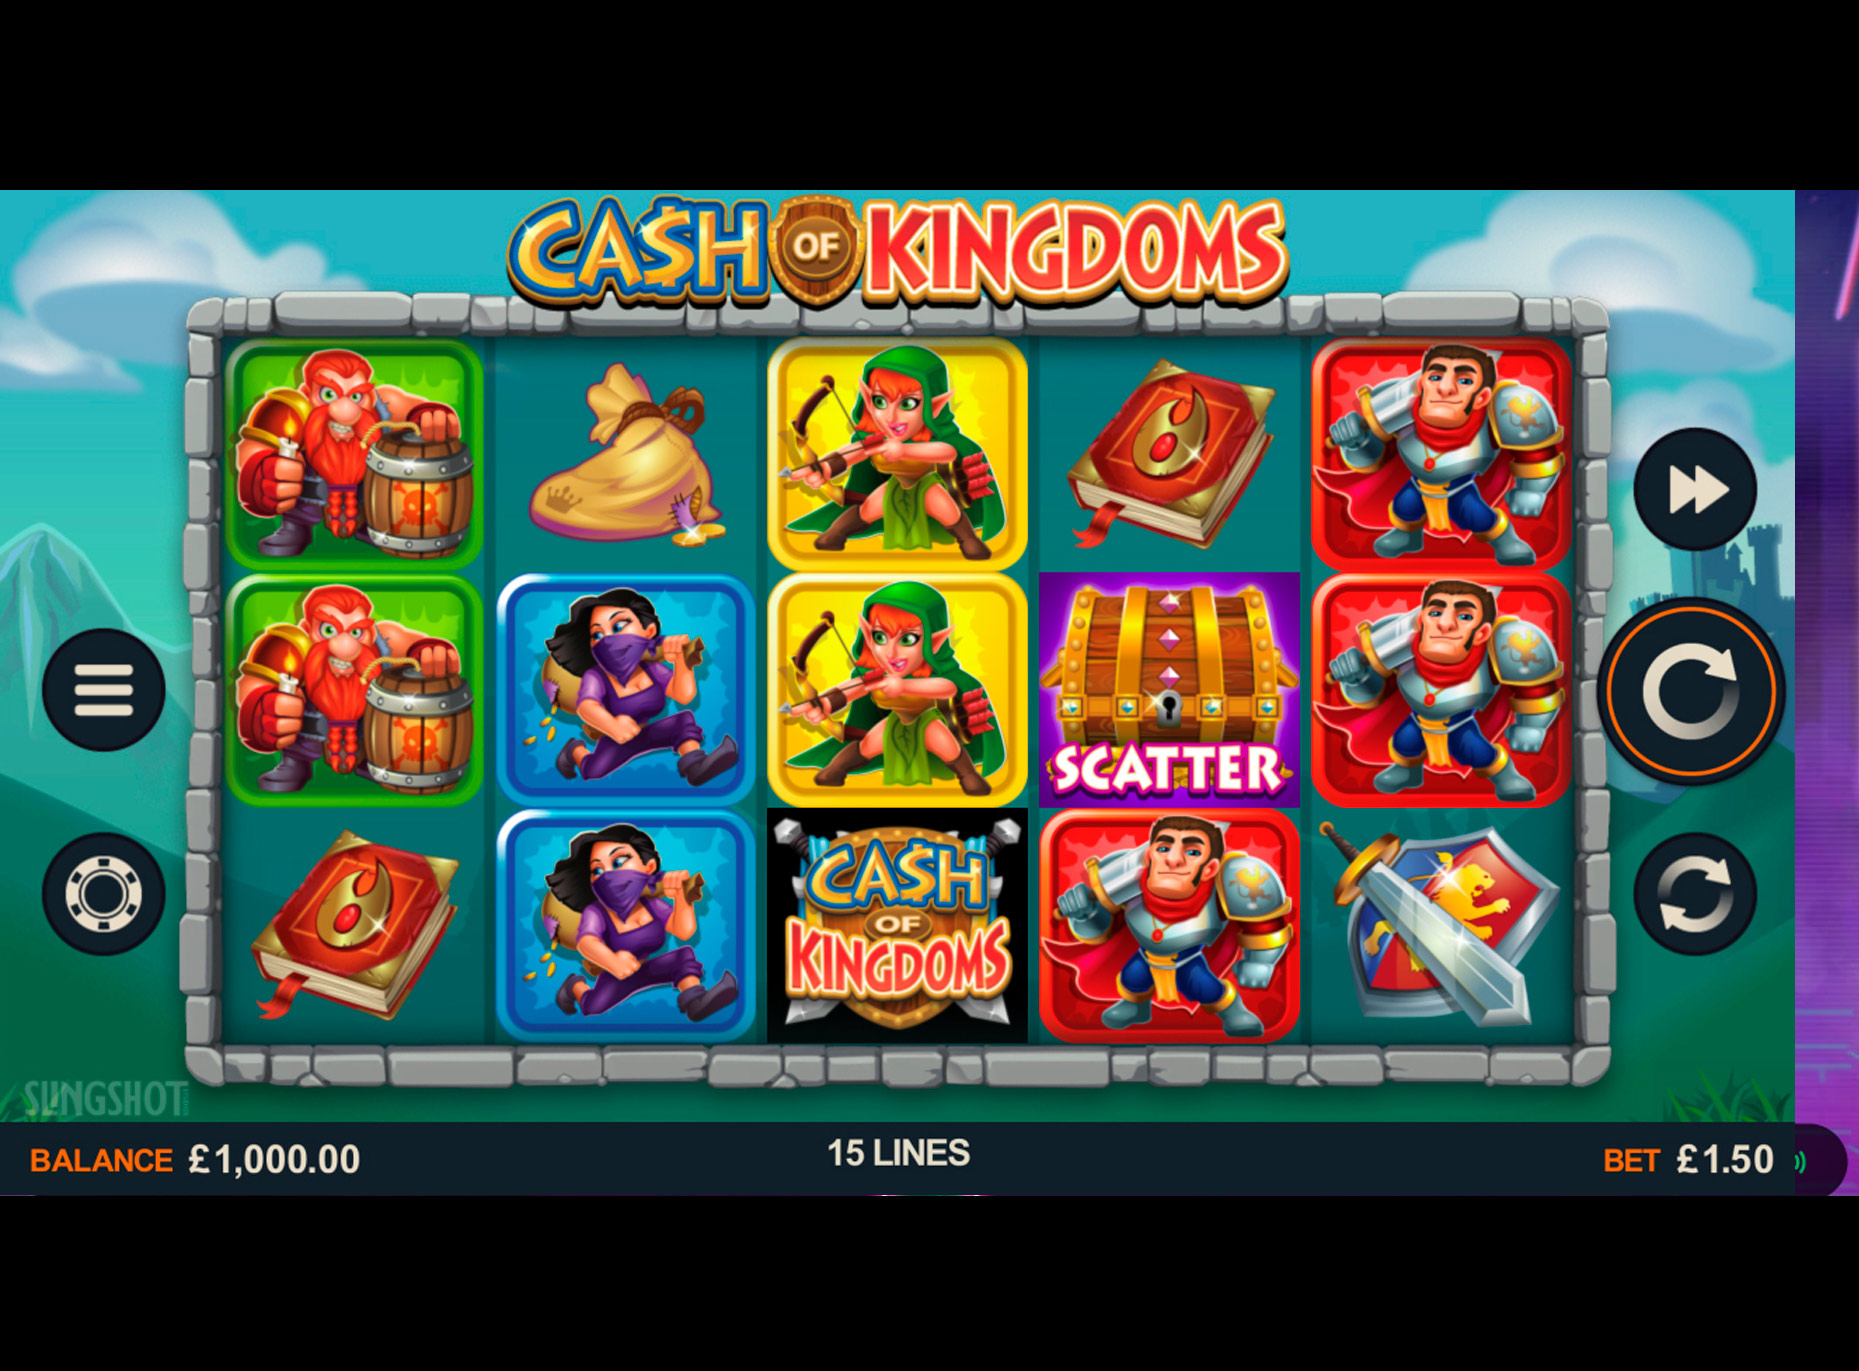 Slot Cash of Kingdoms